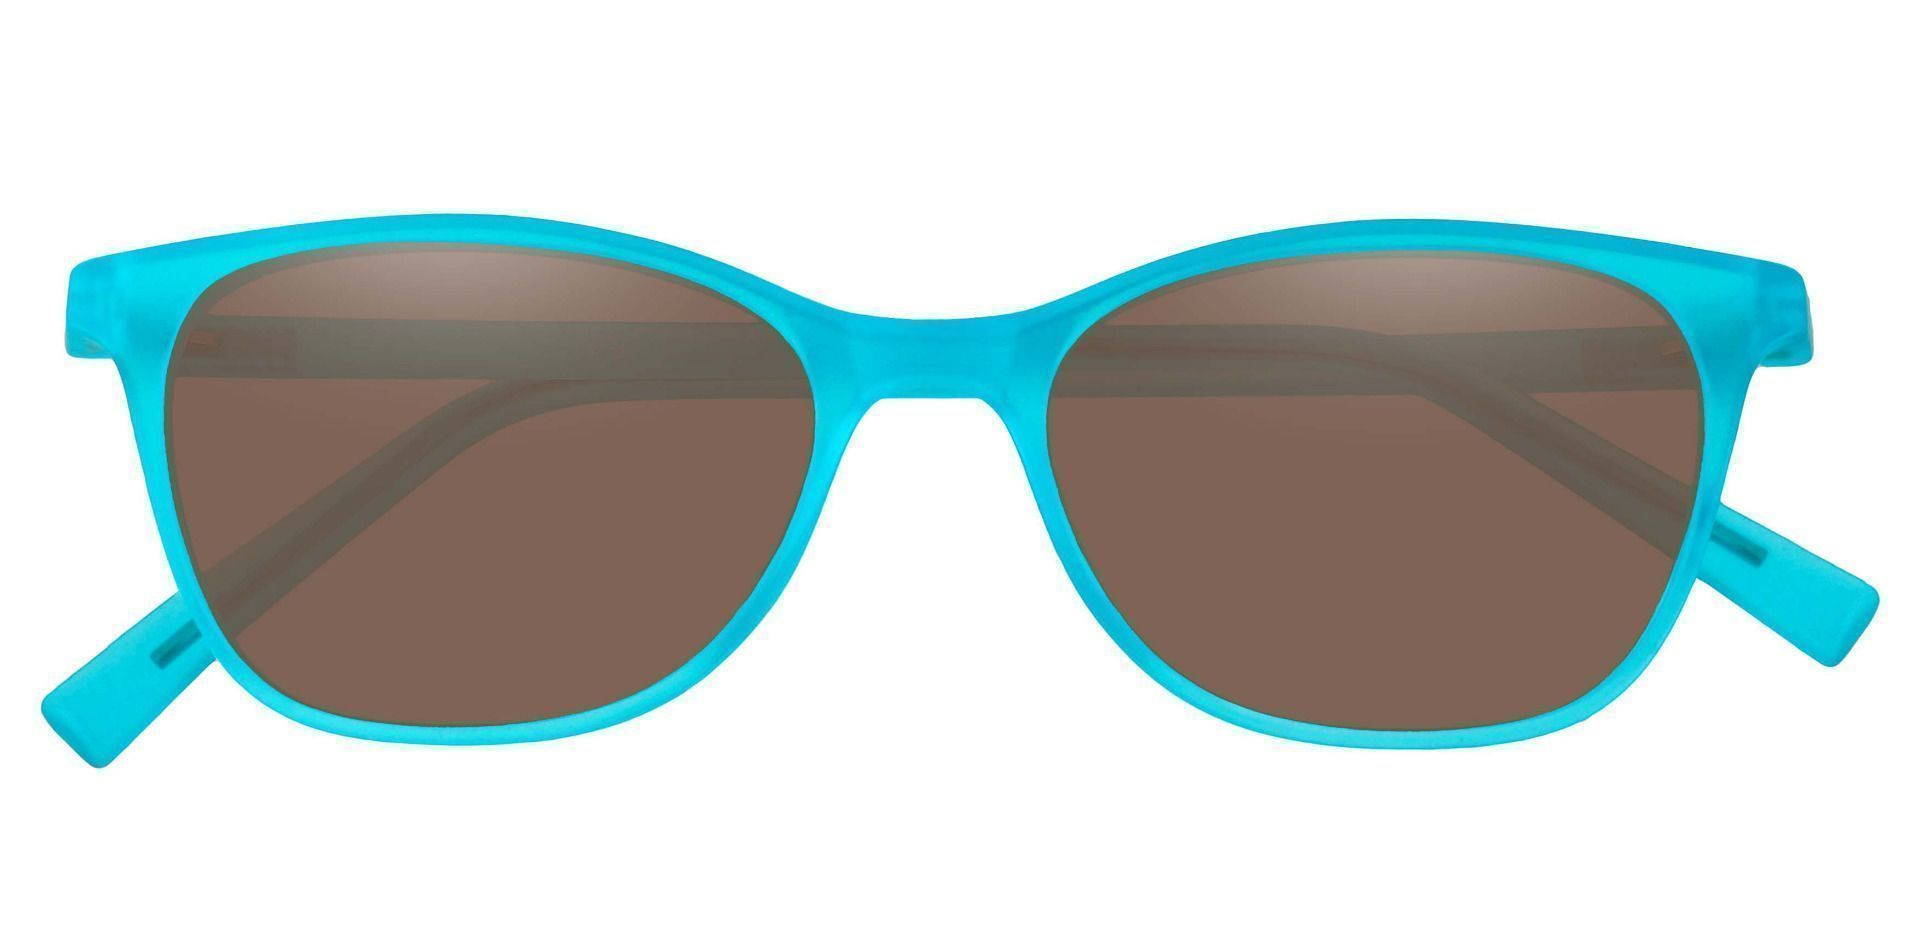 Sasha Classic Square Prescription Sunglasses - Blue Frame With Brown Lenses